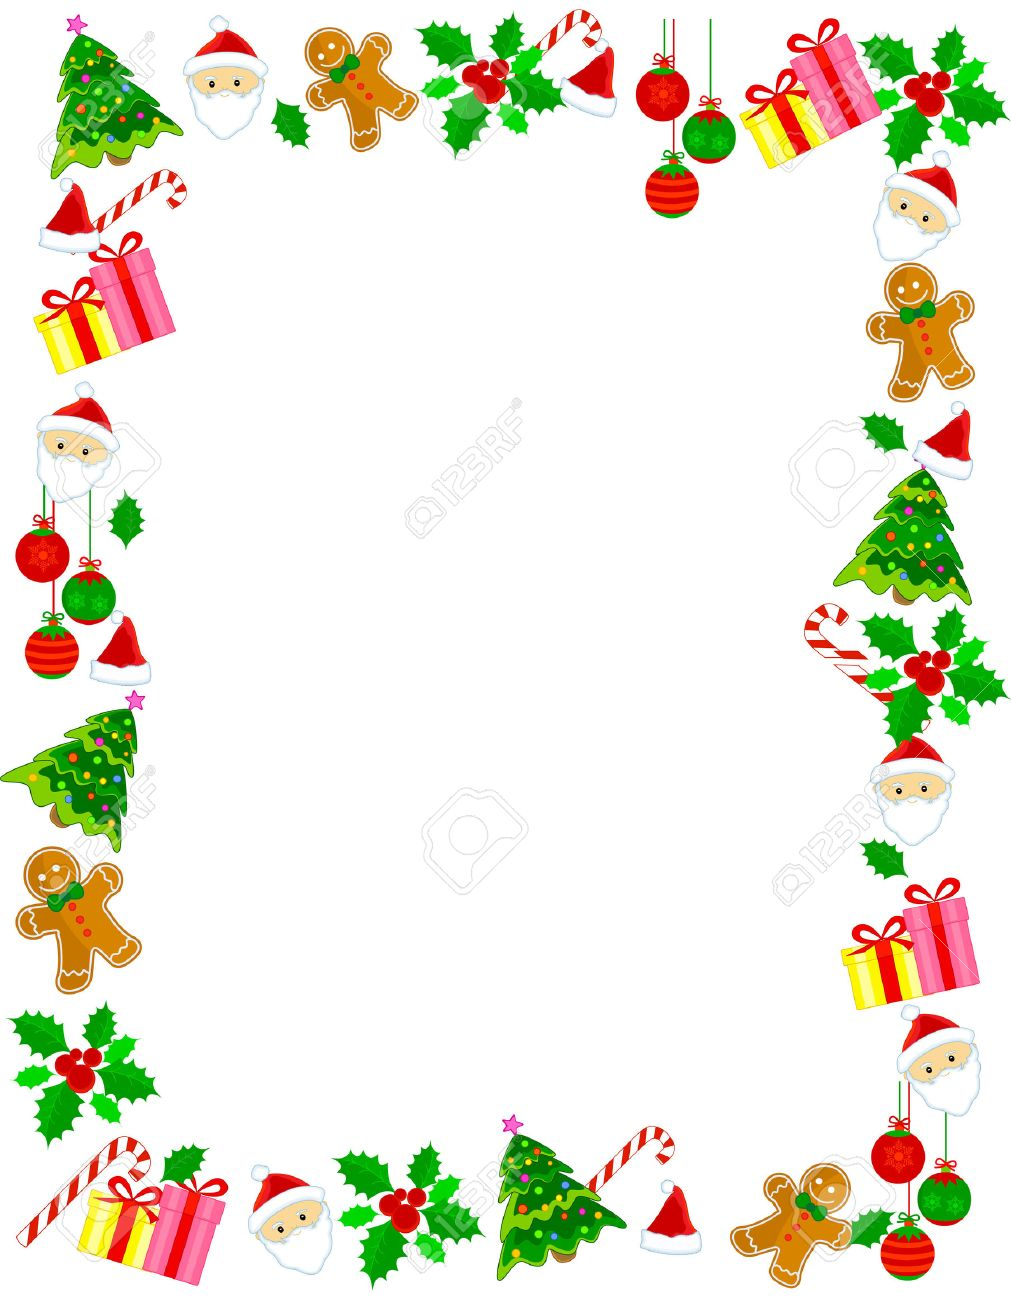 Colorful christmas frame / border with different clip arts.